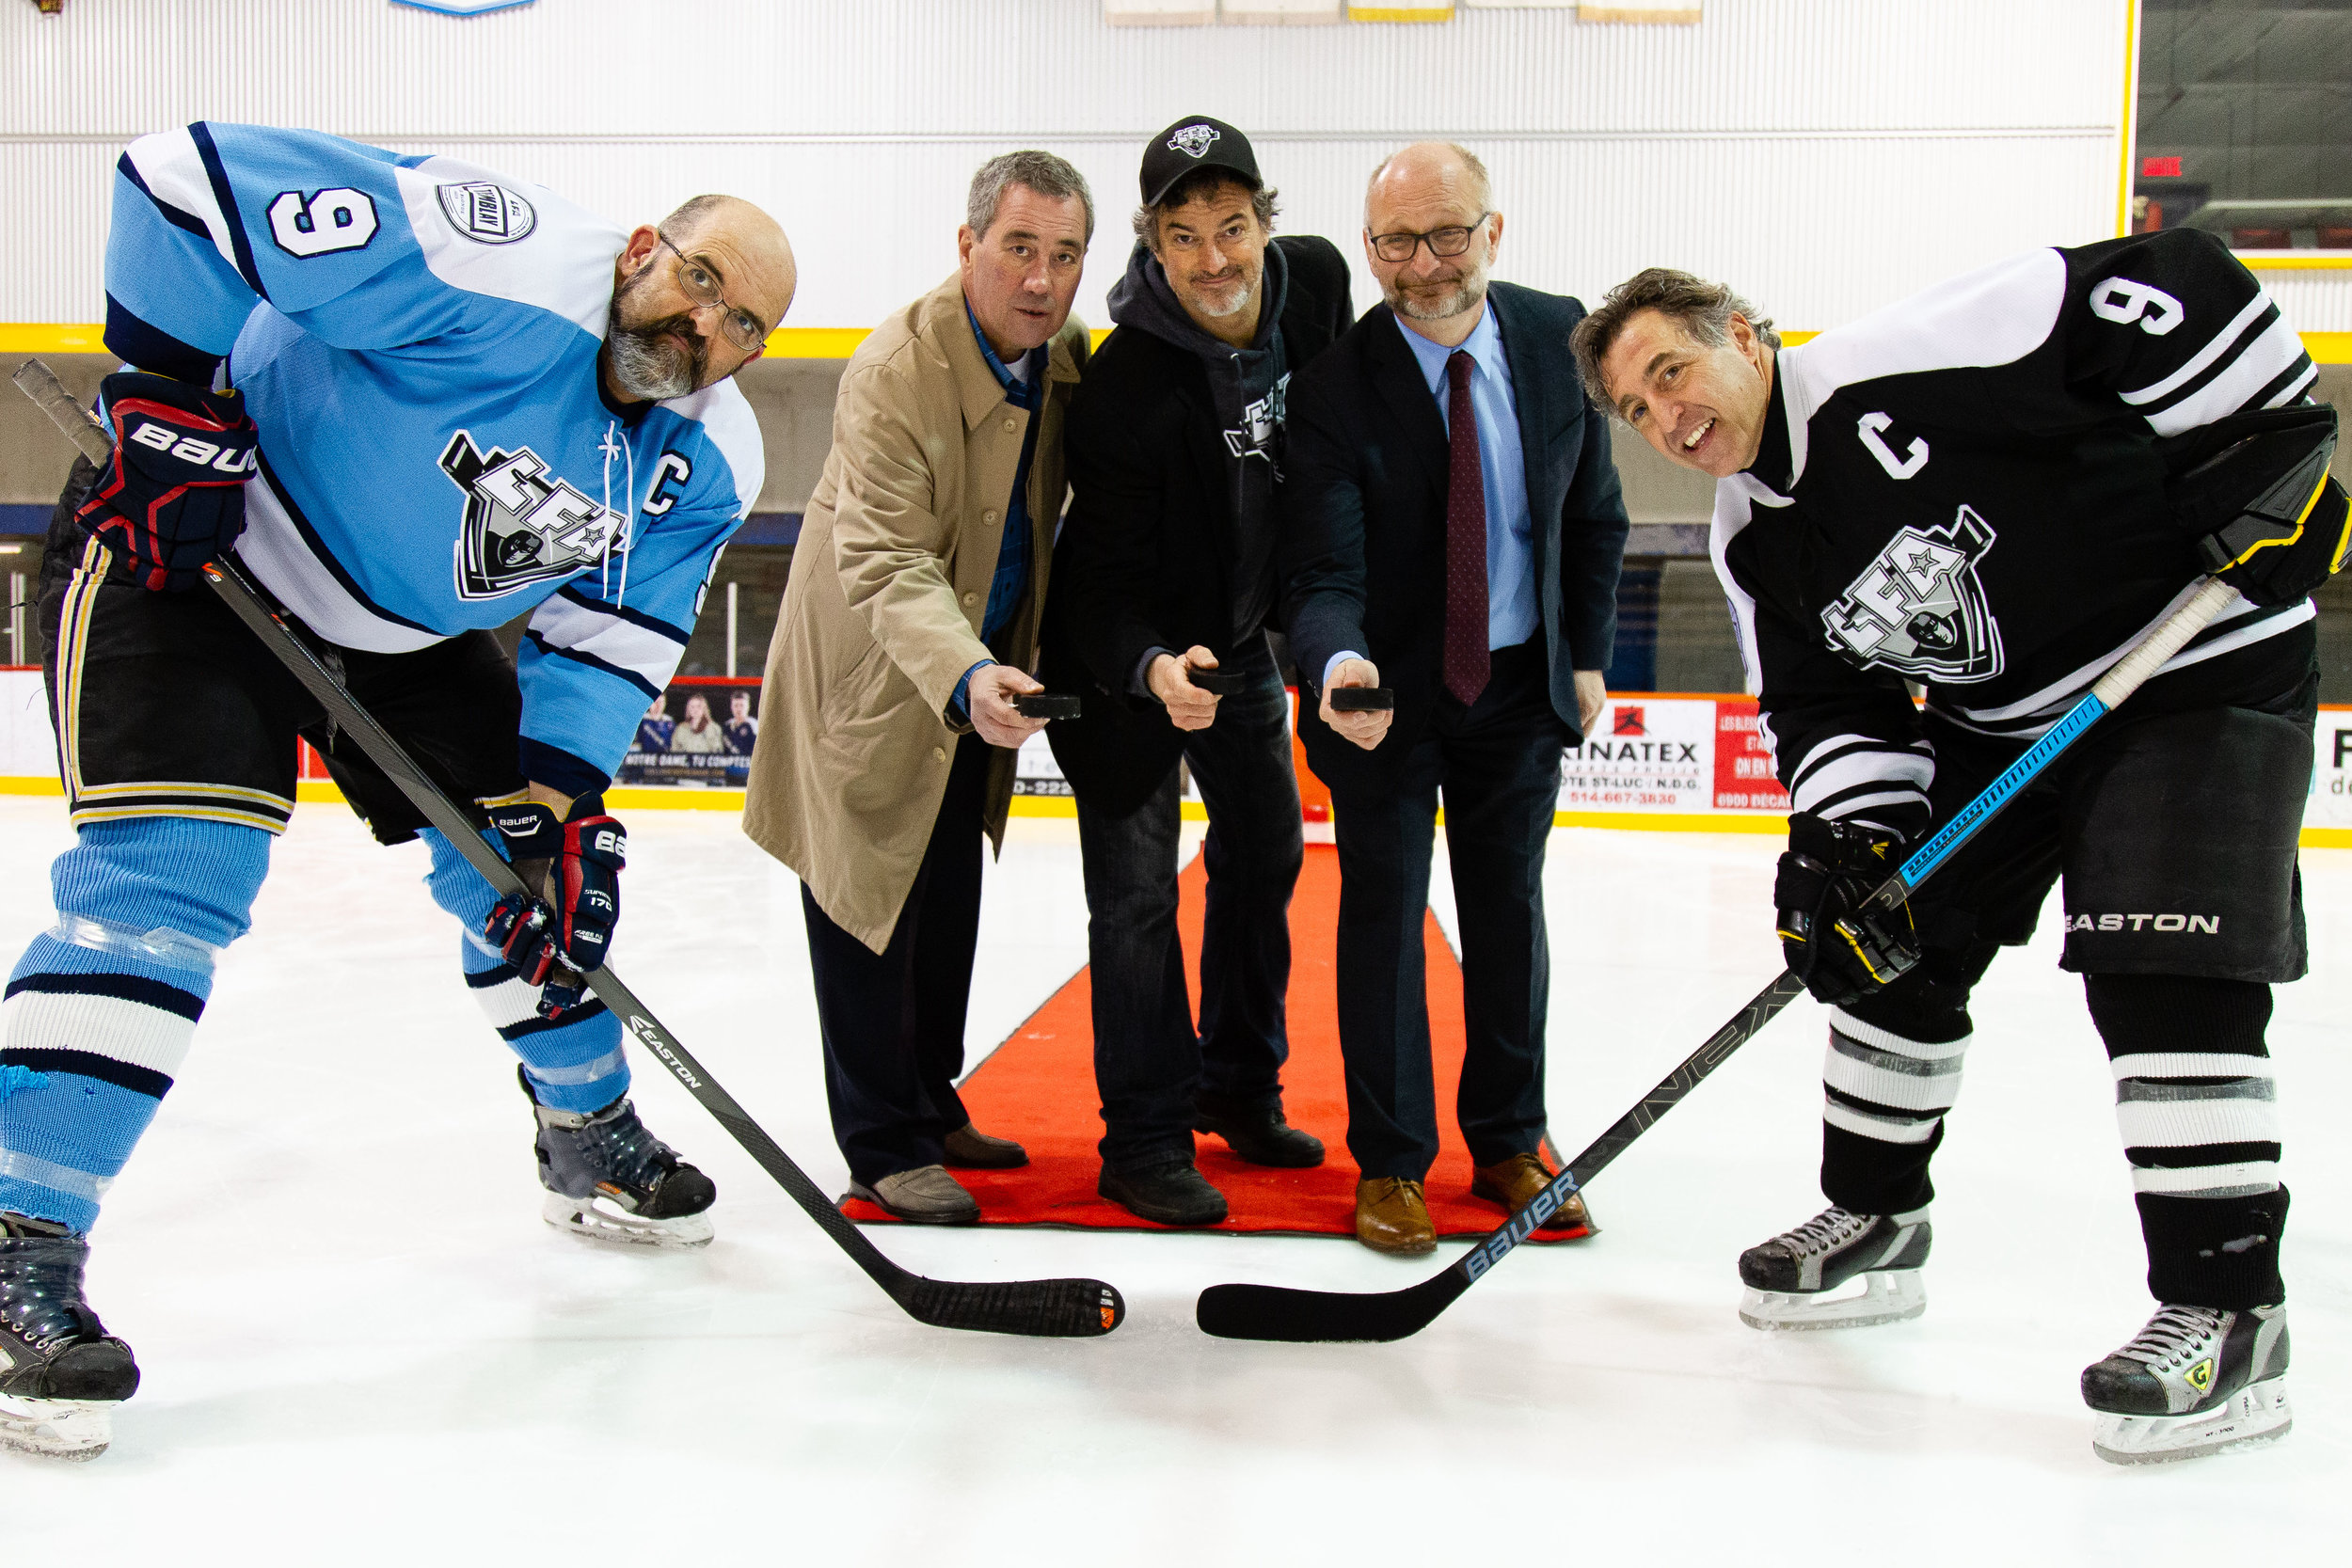 (from left to right) Martin Maillée, vinnie matteo president of the slap hockey program, lfa ceo jf-desbois, the honorable Dave Lametti, minister of justice of the federal goverment and Tony Manocchio (PHOTO JOE FLEMINGS)